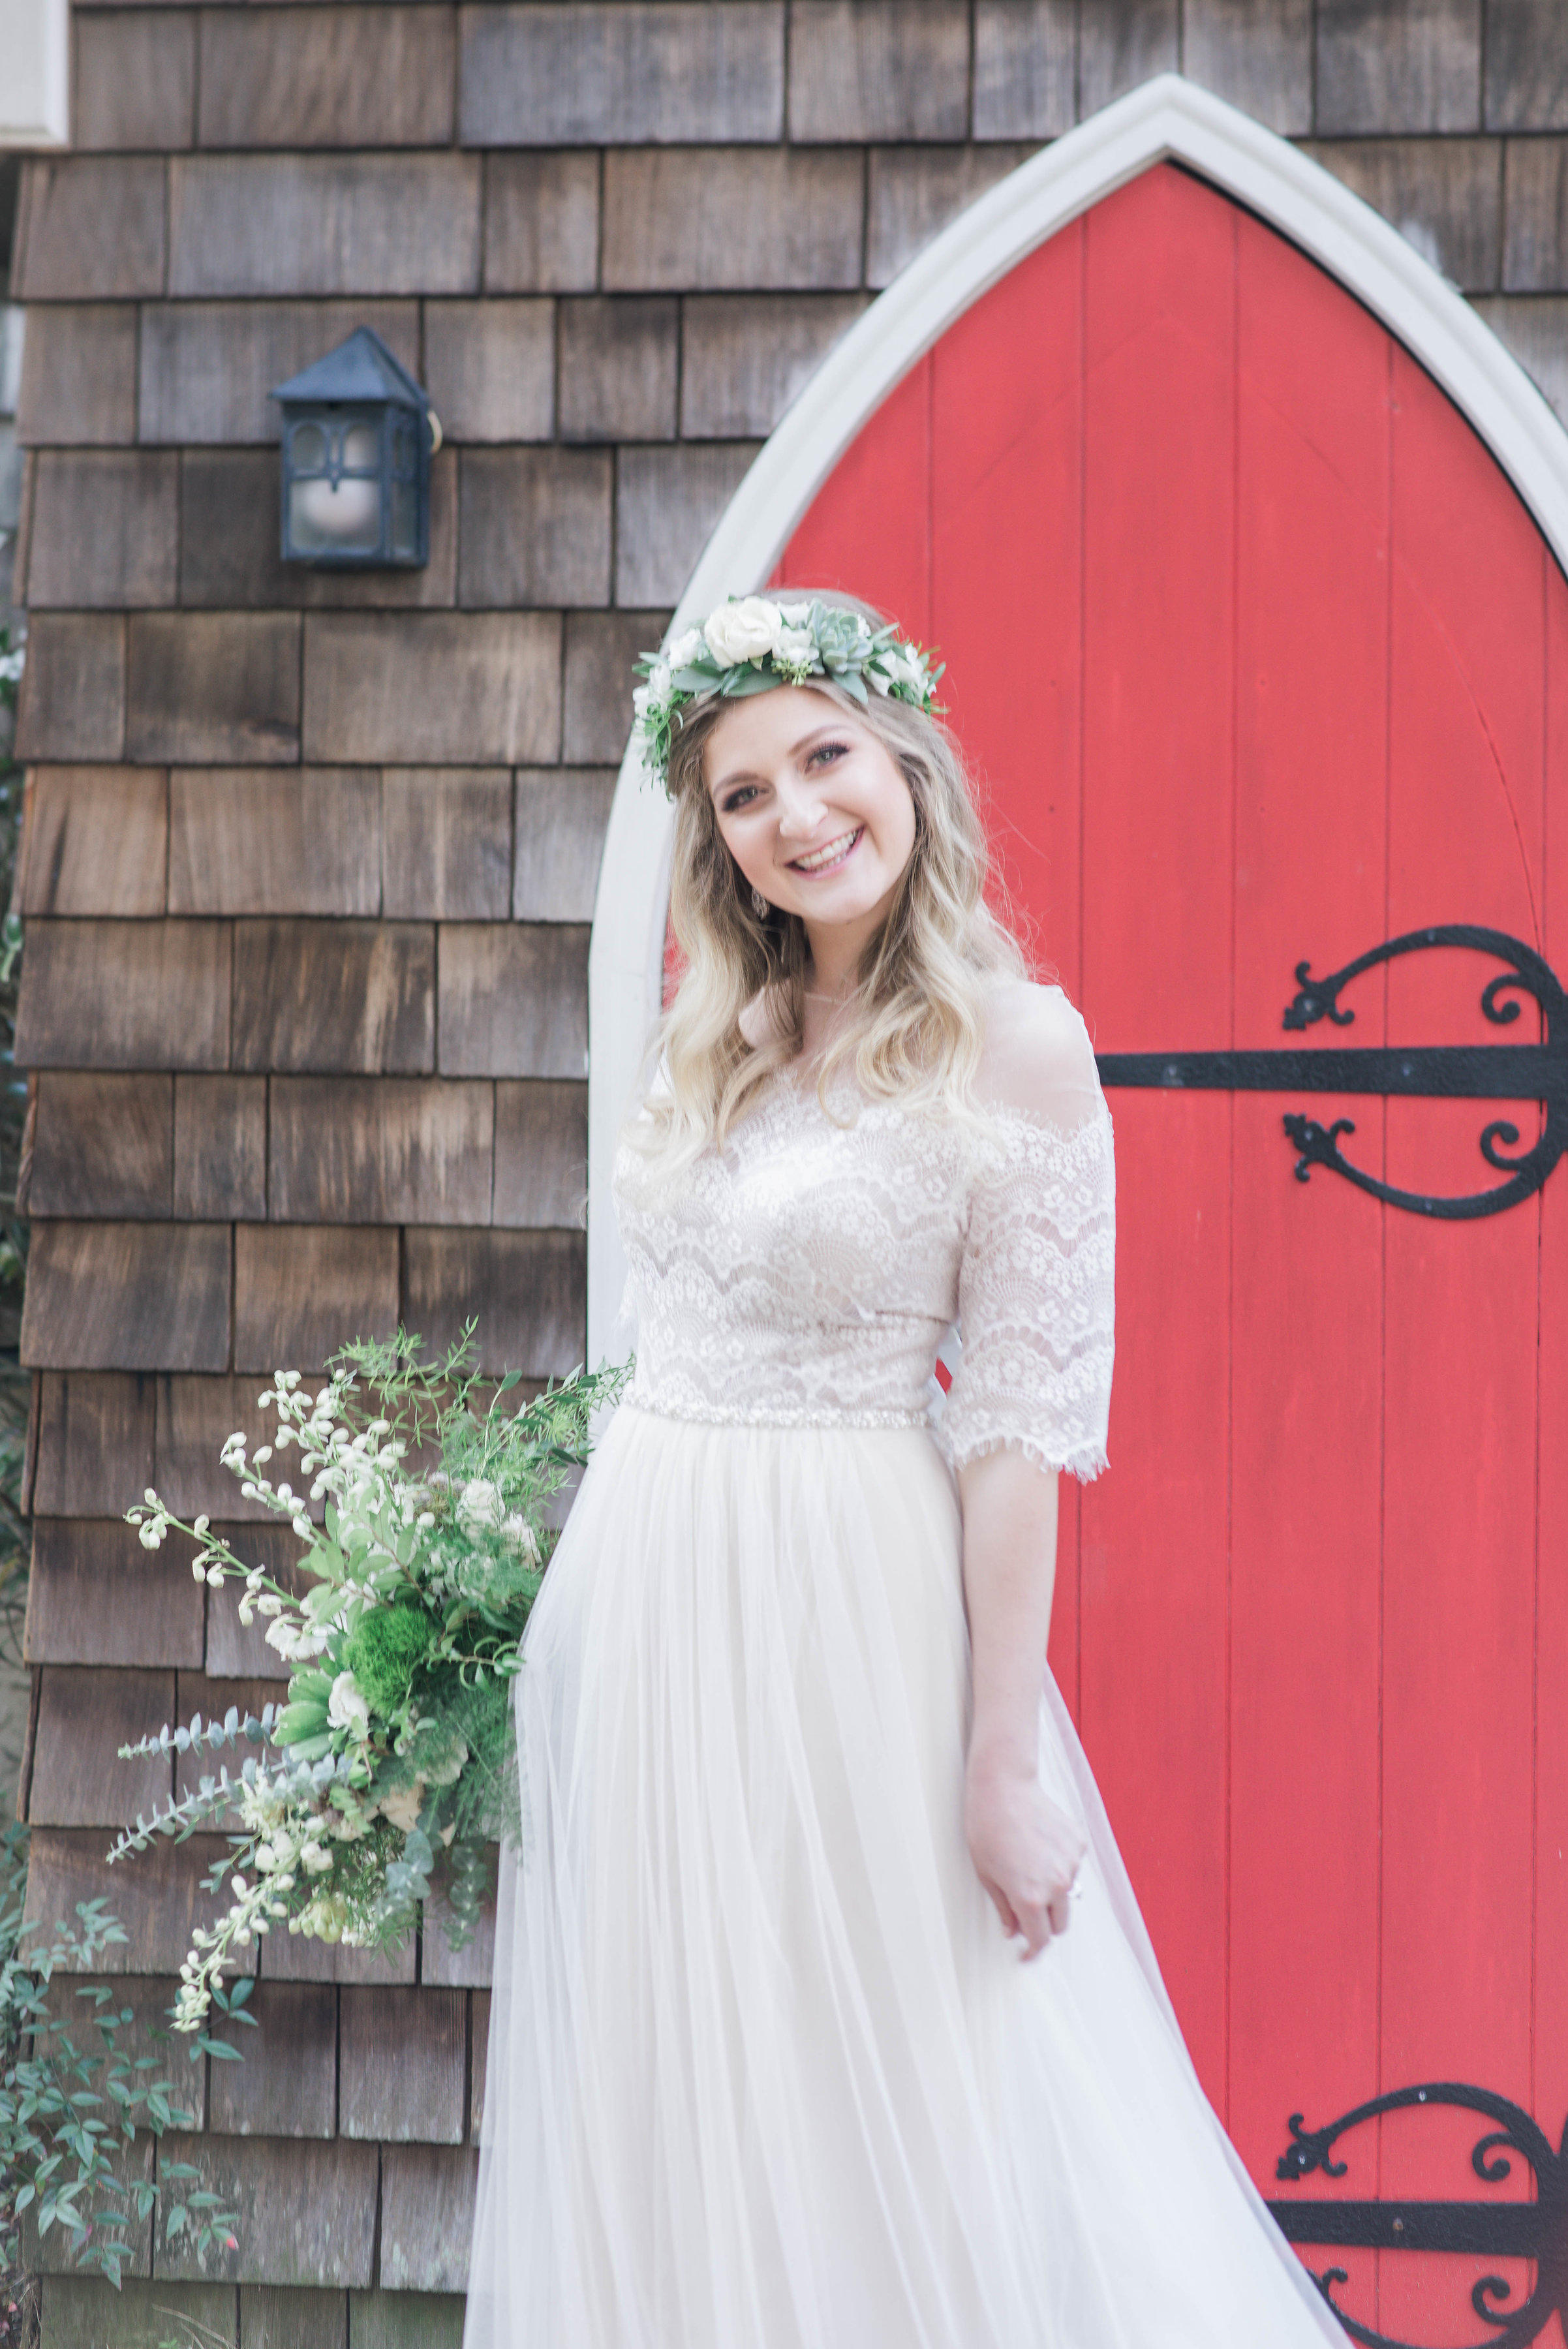 Bride Red Door Wedding | Ademurelife Fashion Blog